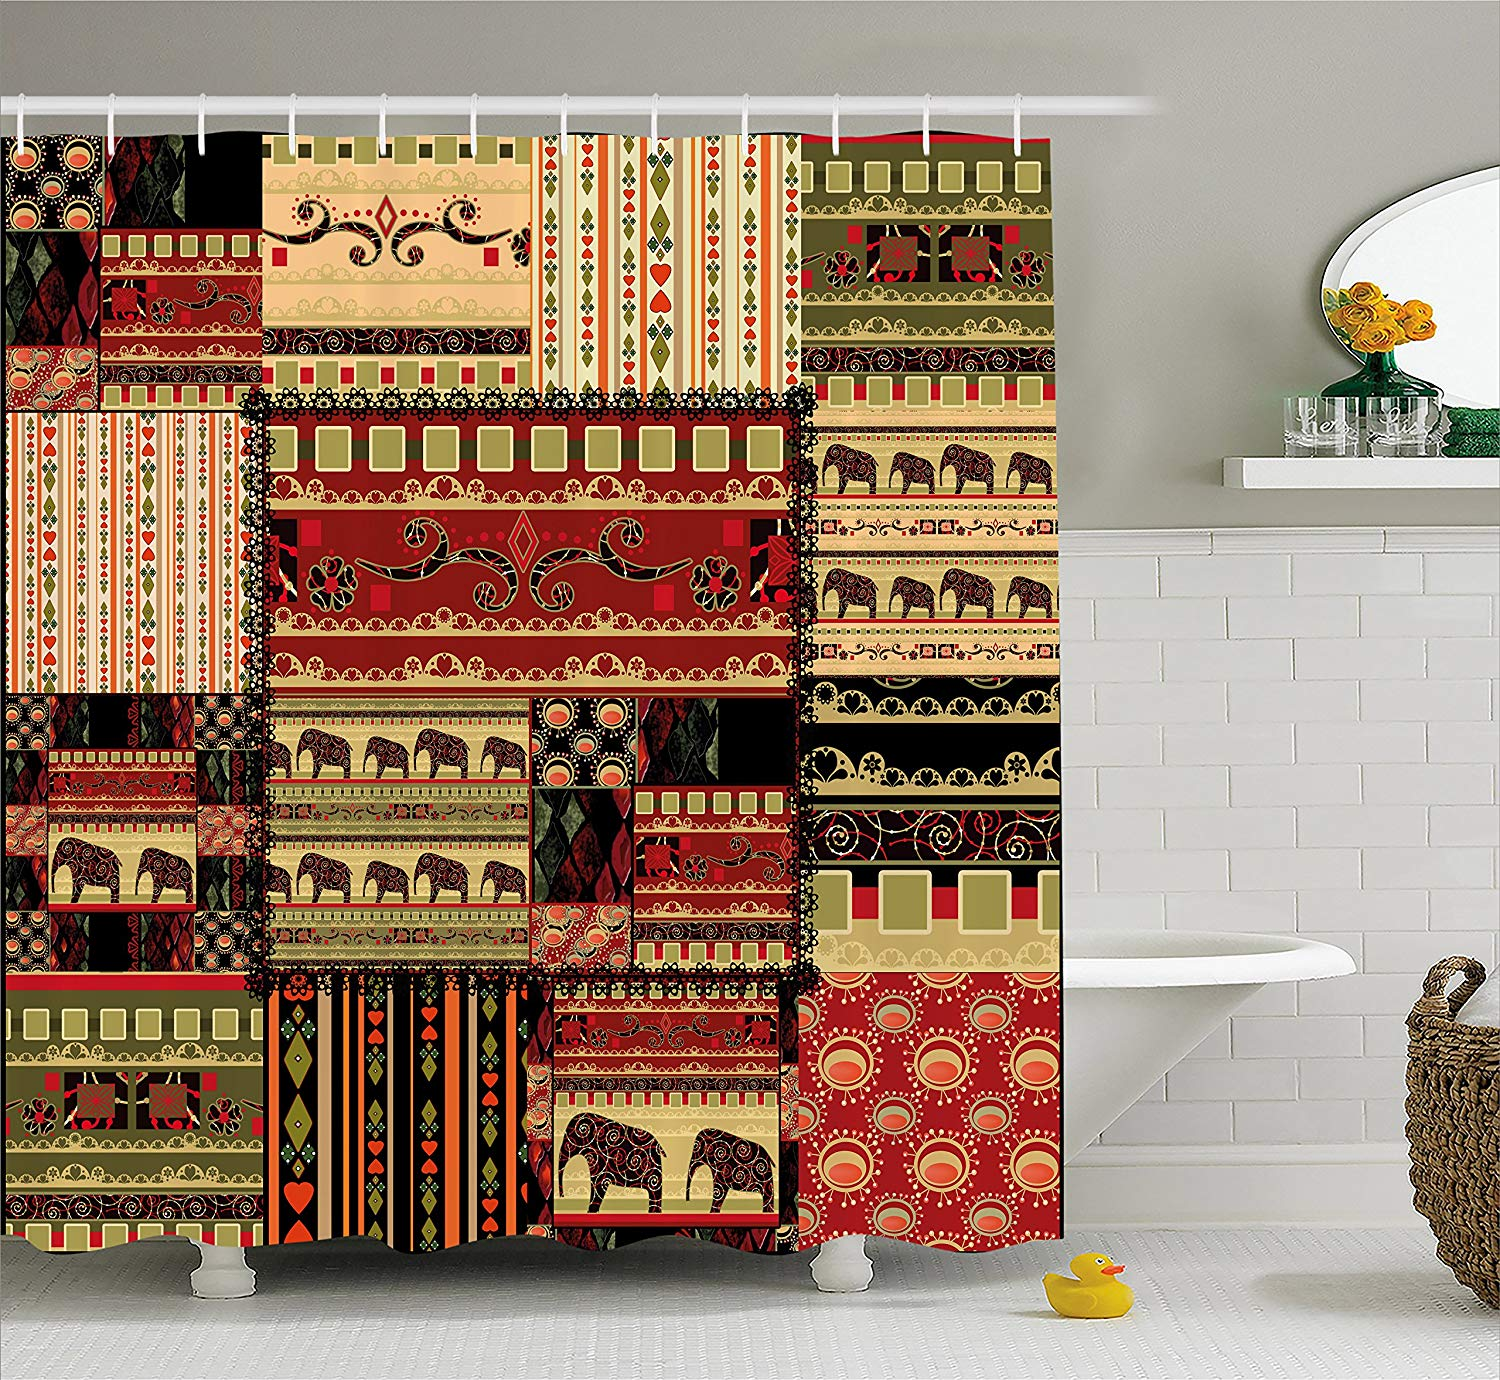 Ambesonne African Shower Curtain, Patchwork Style Asian Pattern with Elephants and Cultural Ancient Motifs Print, Fabric Bathroom Decor Set with Hooks, 75 Inches Long, Red Green Black